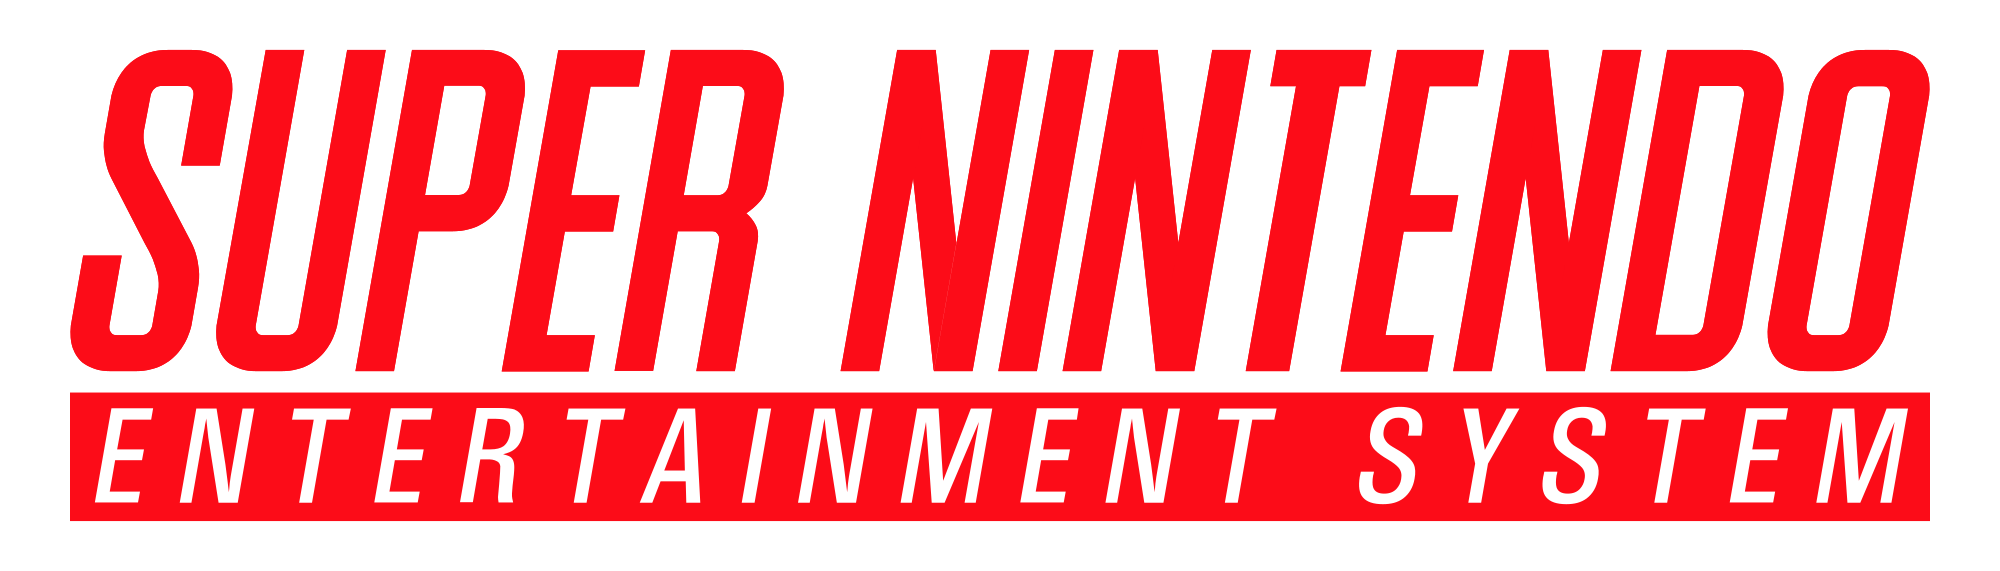 Nes logo png. File super nintendo entertainment